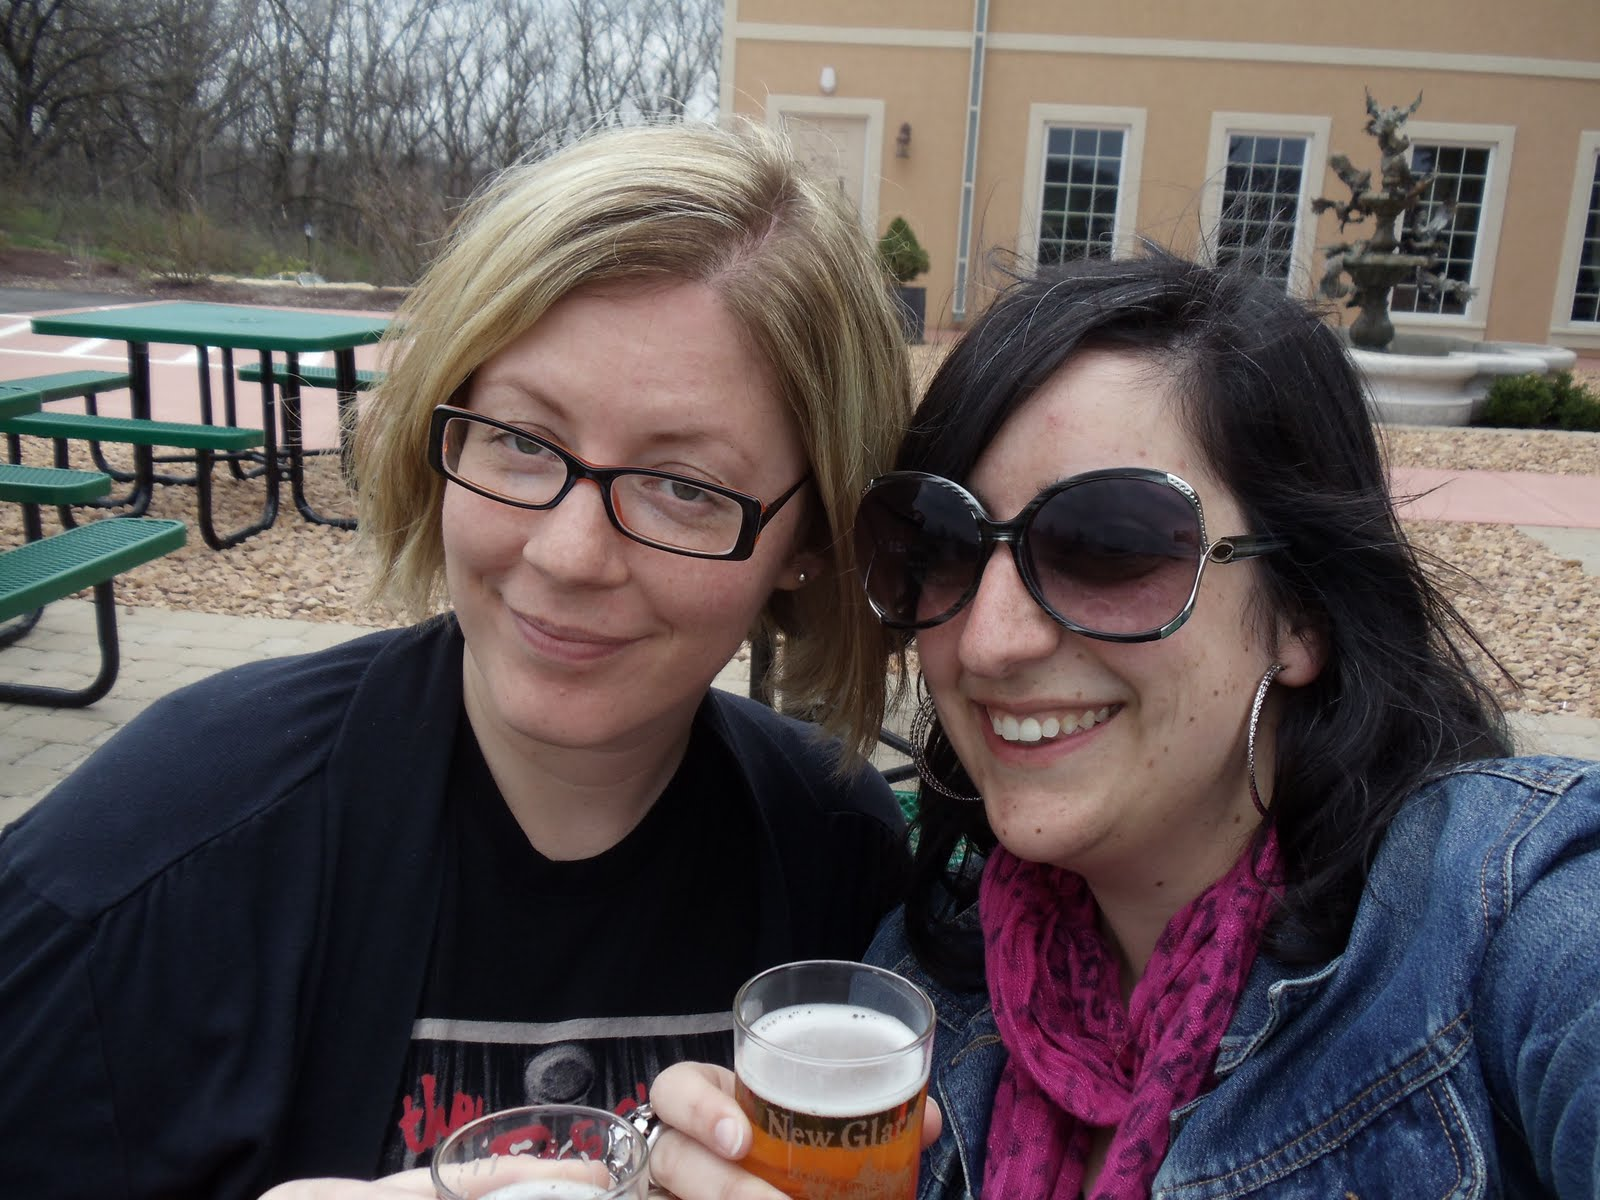 glarus women Bay, eau claire, new glarus hops and local wi beer perfect for beer don't try to keep up special blends women's support your local brewery long sleeve t-shirt.